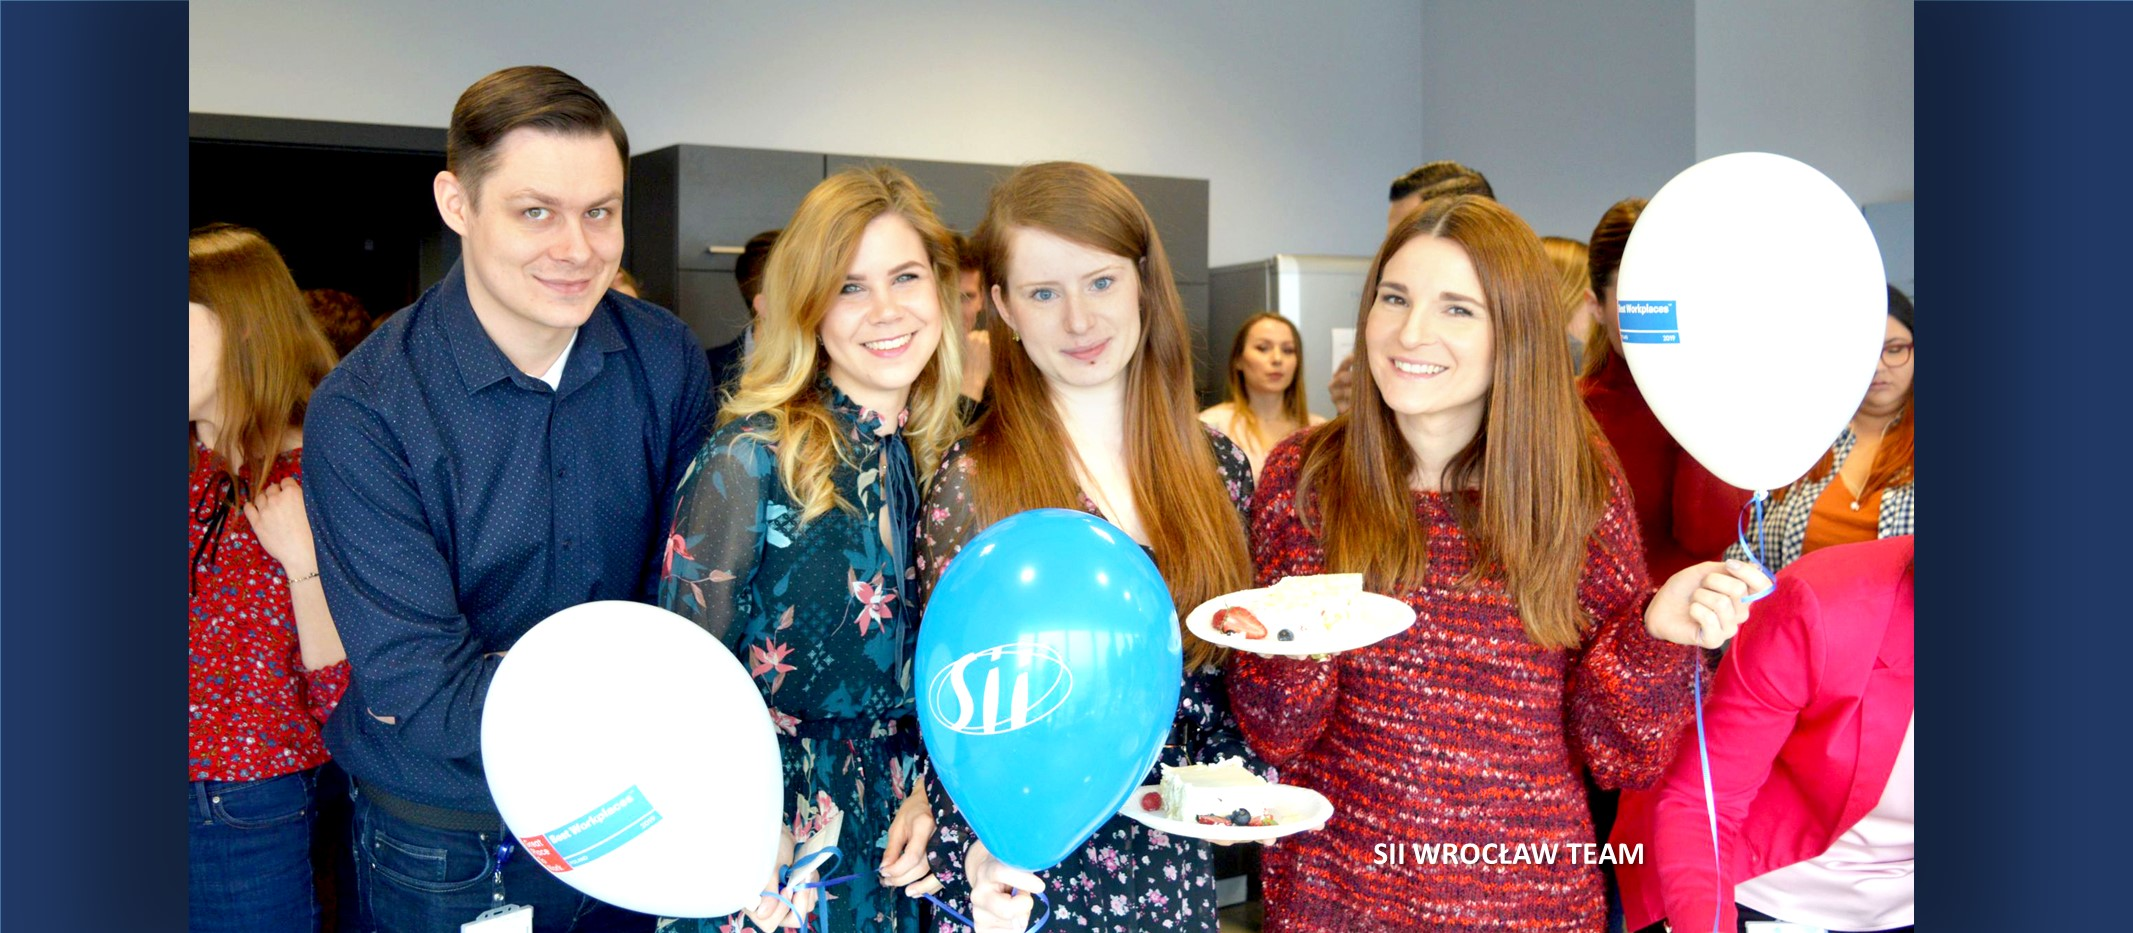 10 years and almost 500 people – Sii Wrocław has two reasons to celebrate